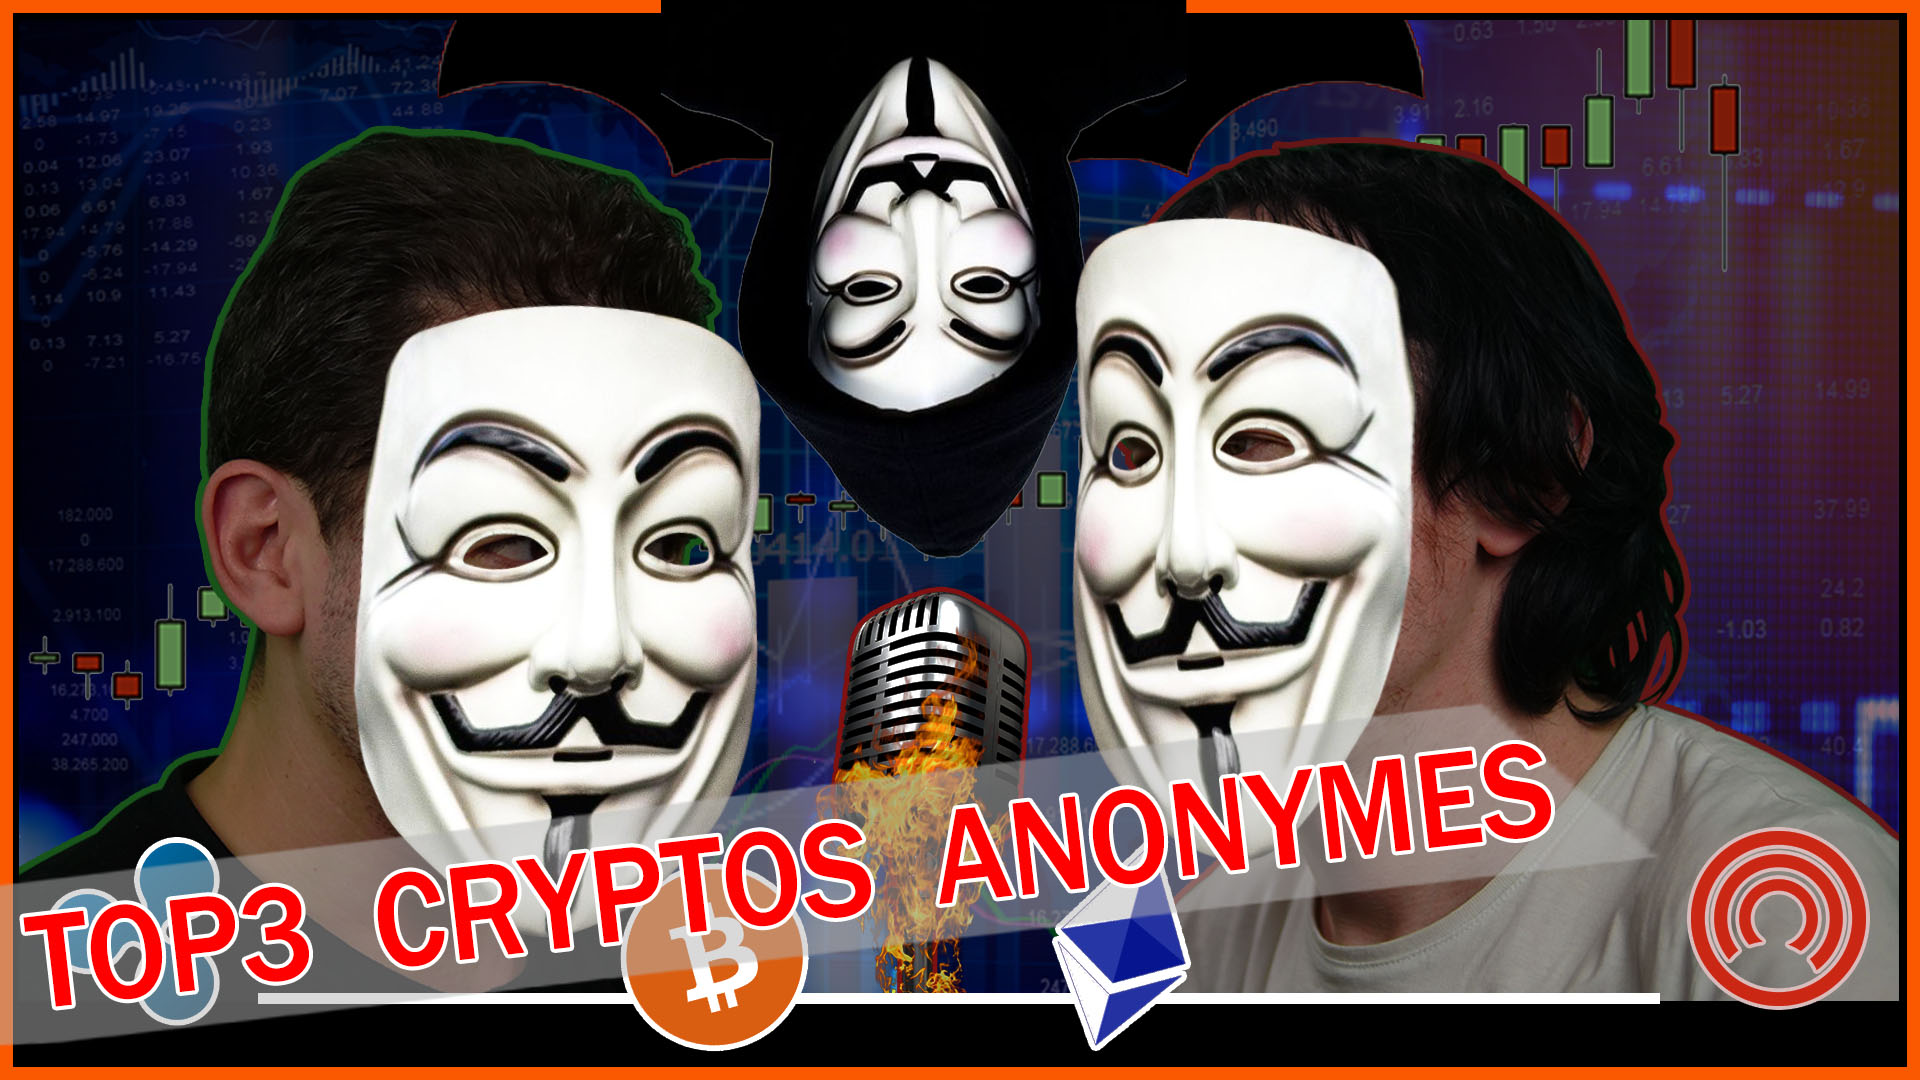 Top3 Cryptomonnaies Anonymes 2018